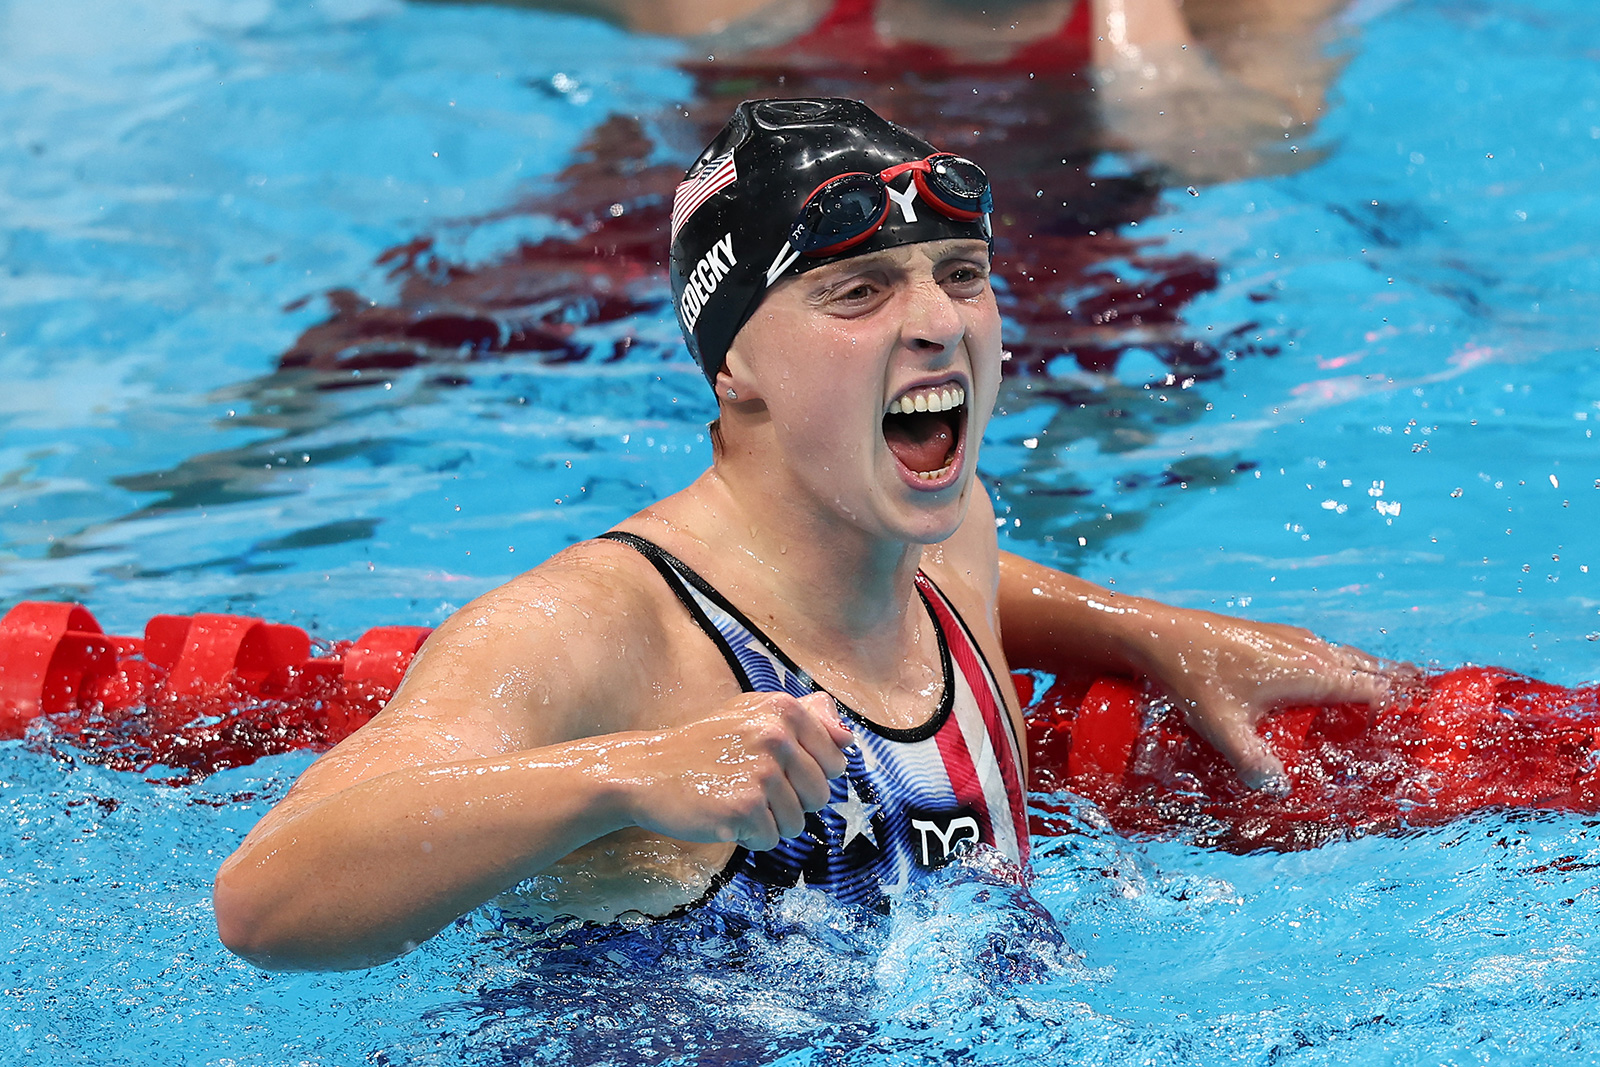 American great Katie Ledecky crushed the first-ever women's 1500m freestyle final to win her first gold medal of Tokyo 2020. She was the favorite to win.